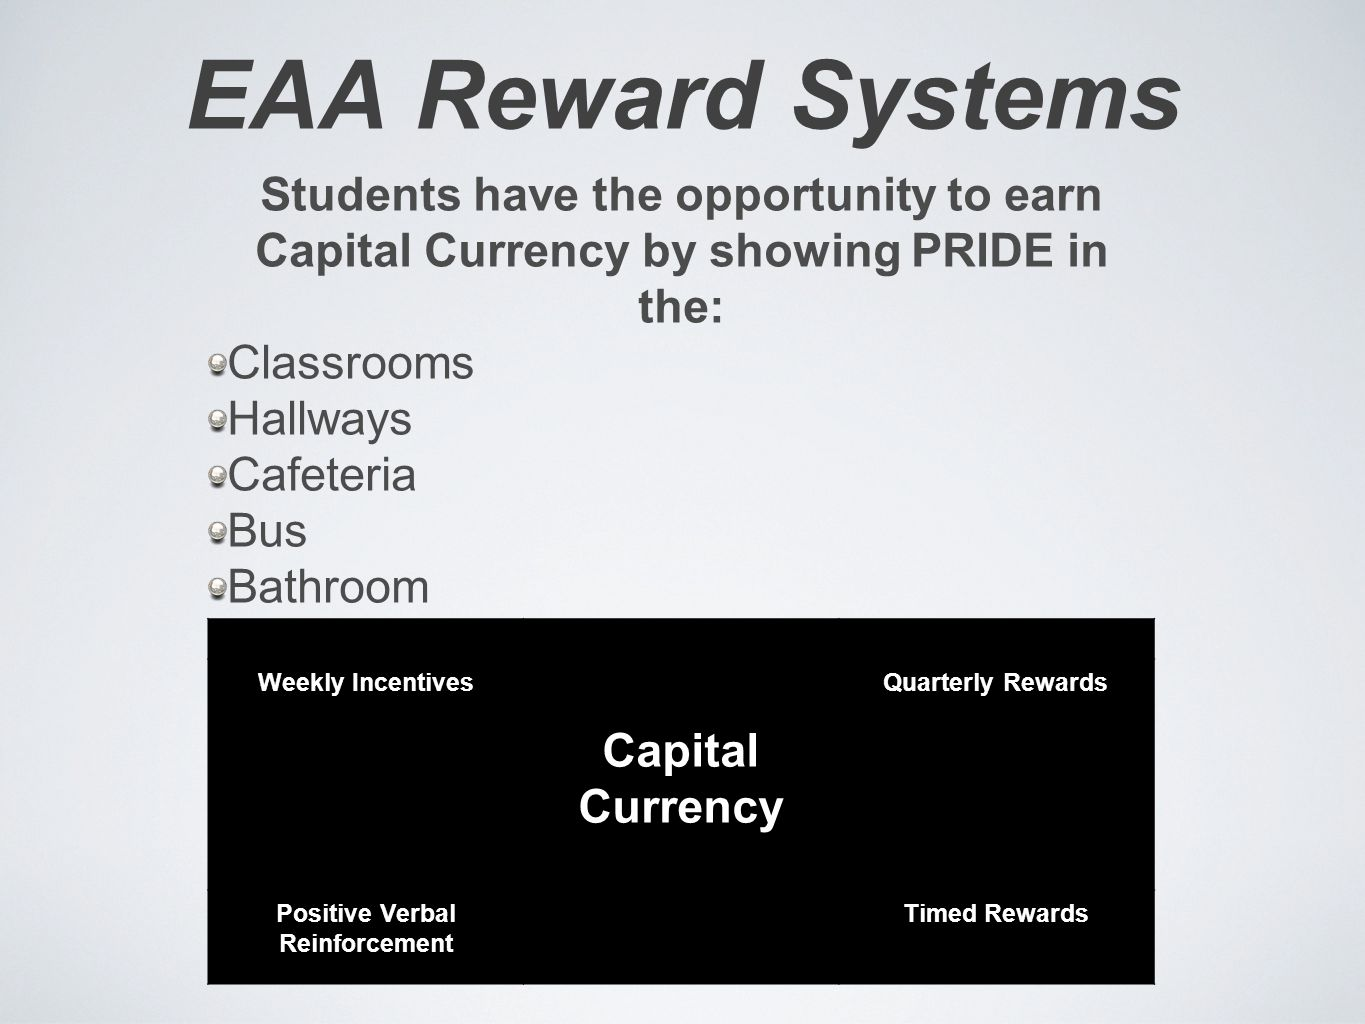 EAA Reward Systems Students have the opportunity to earn Capital Currency by showing PRIDE in the: Classrooms Hallways Cafeteria Bus Bathroom Students